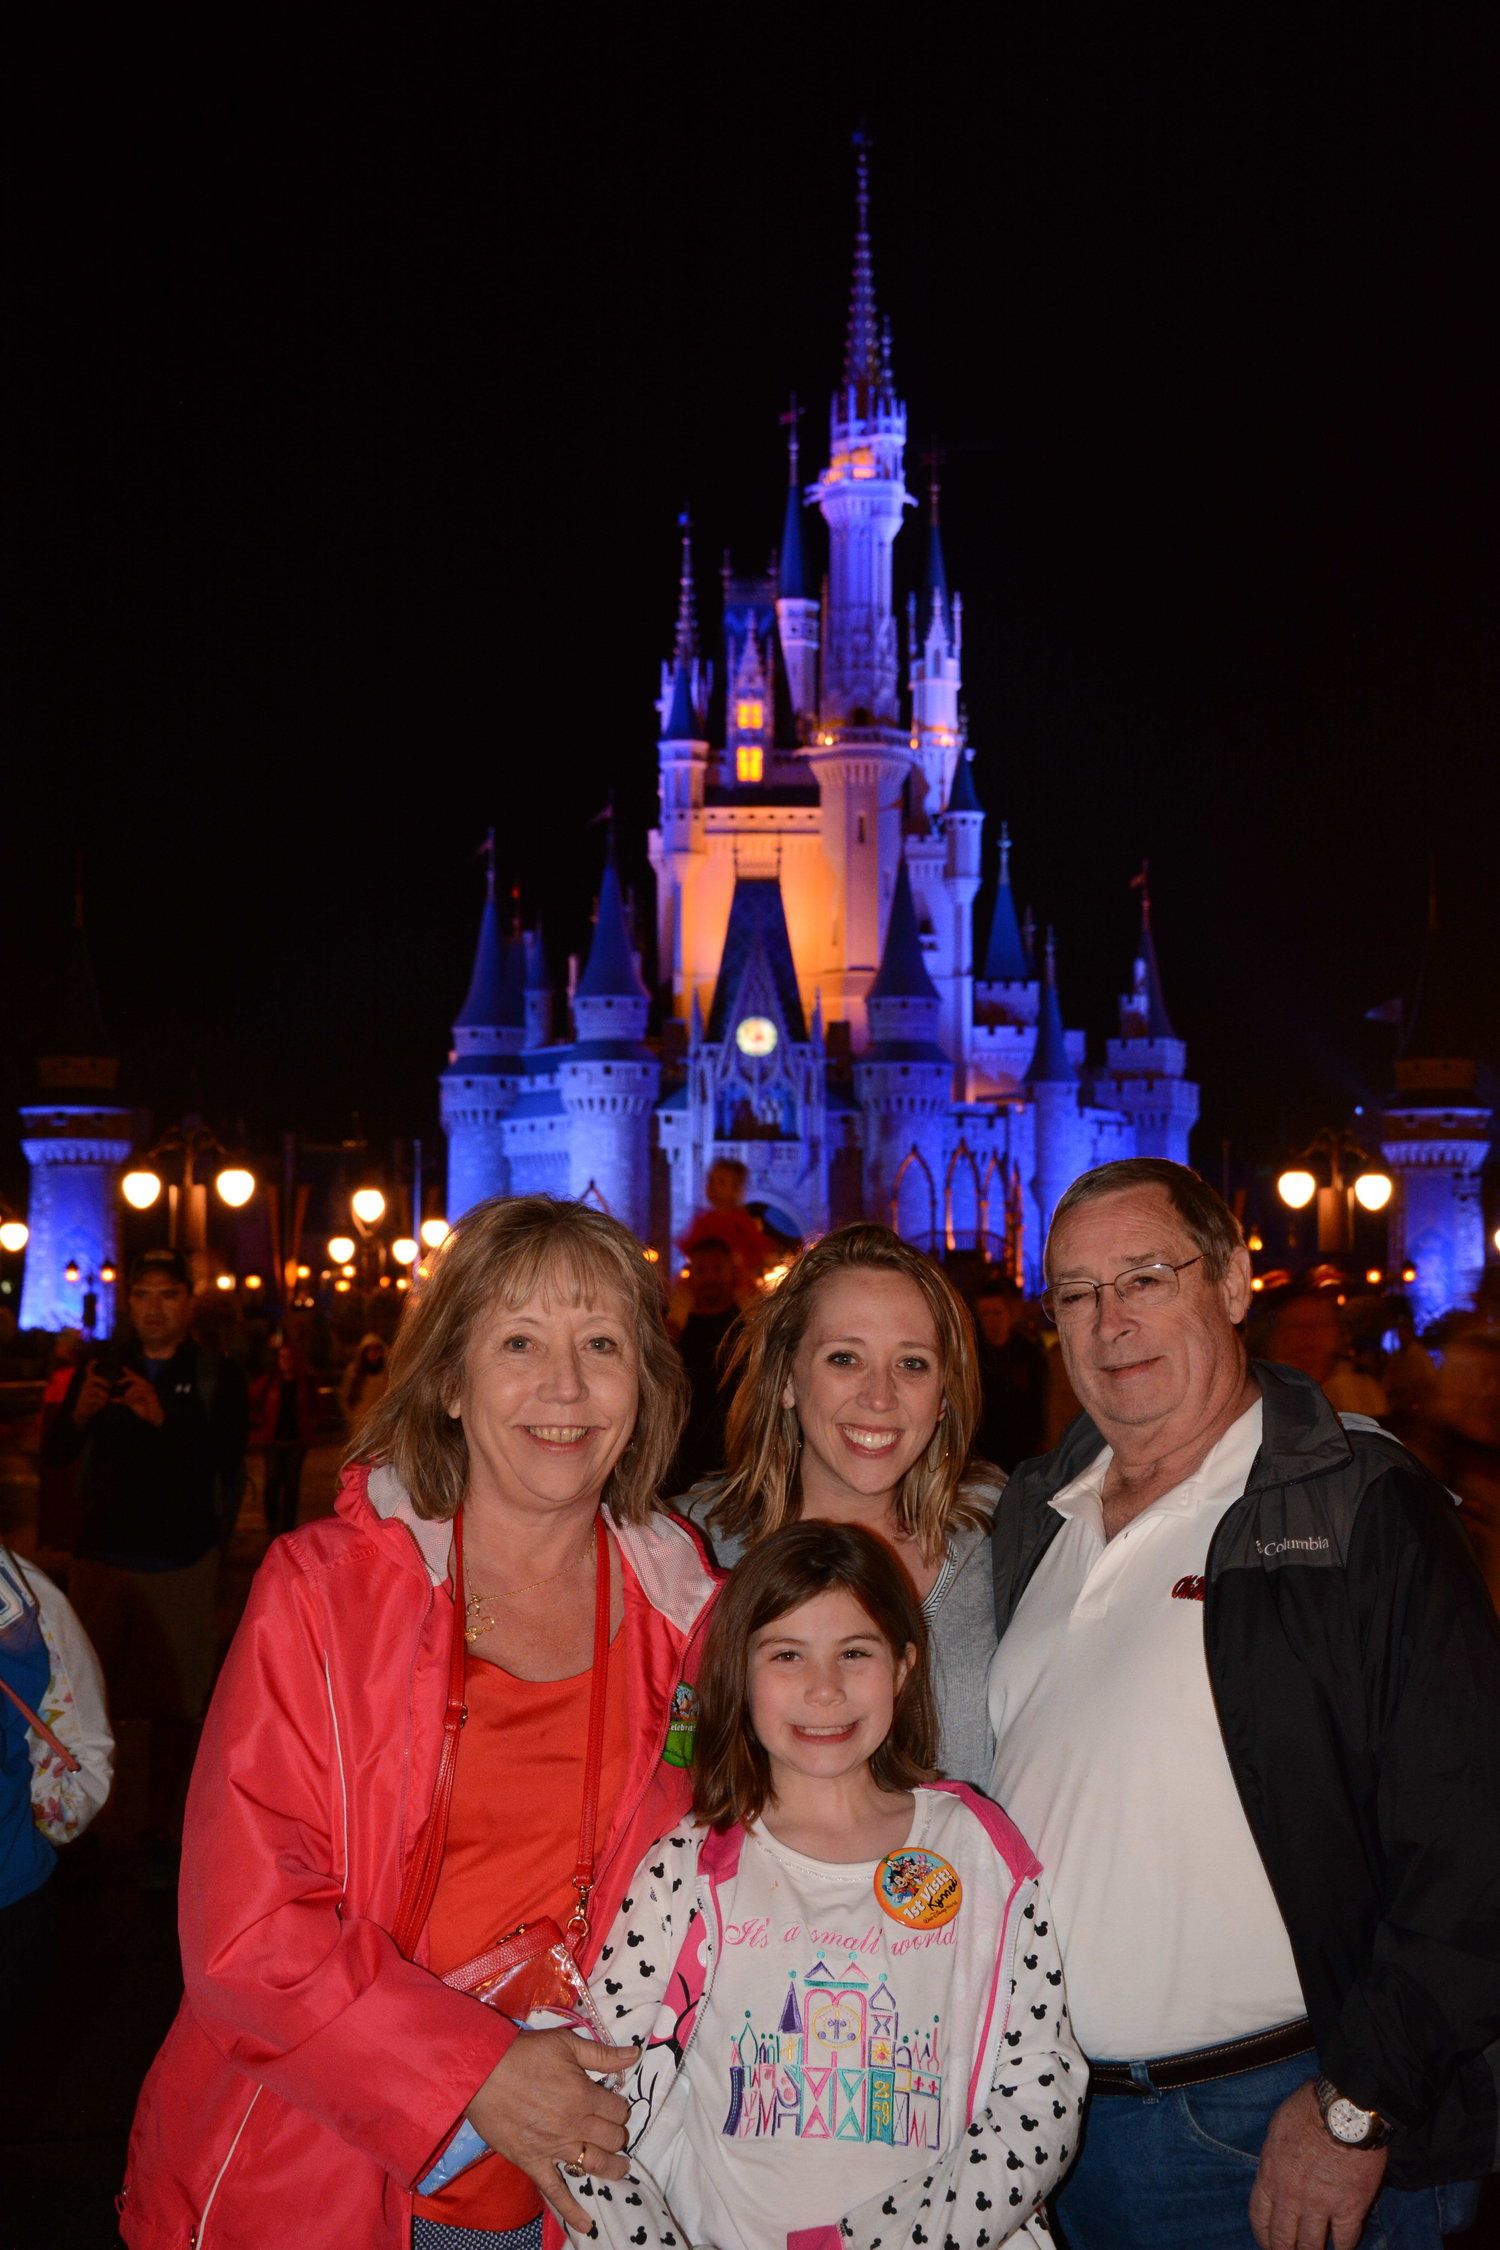 Laura Johns, Disney World